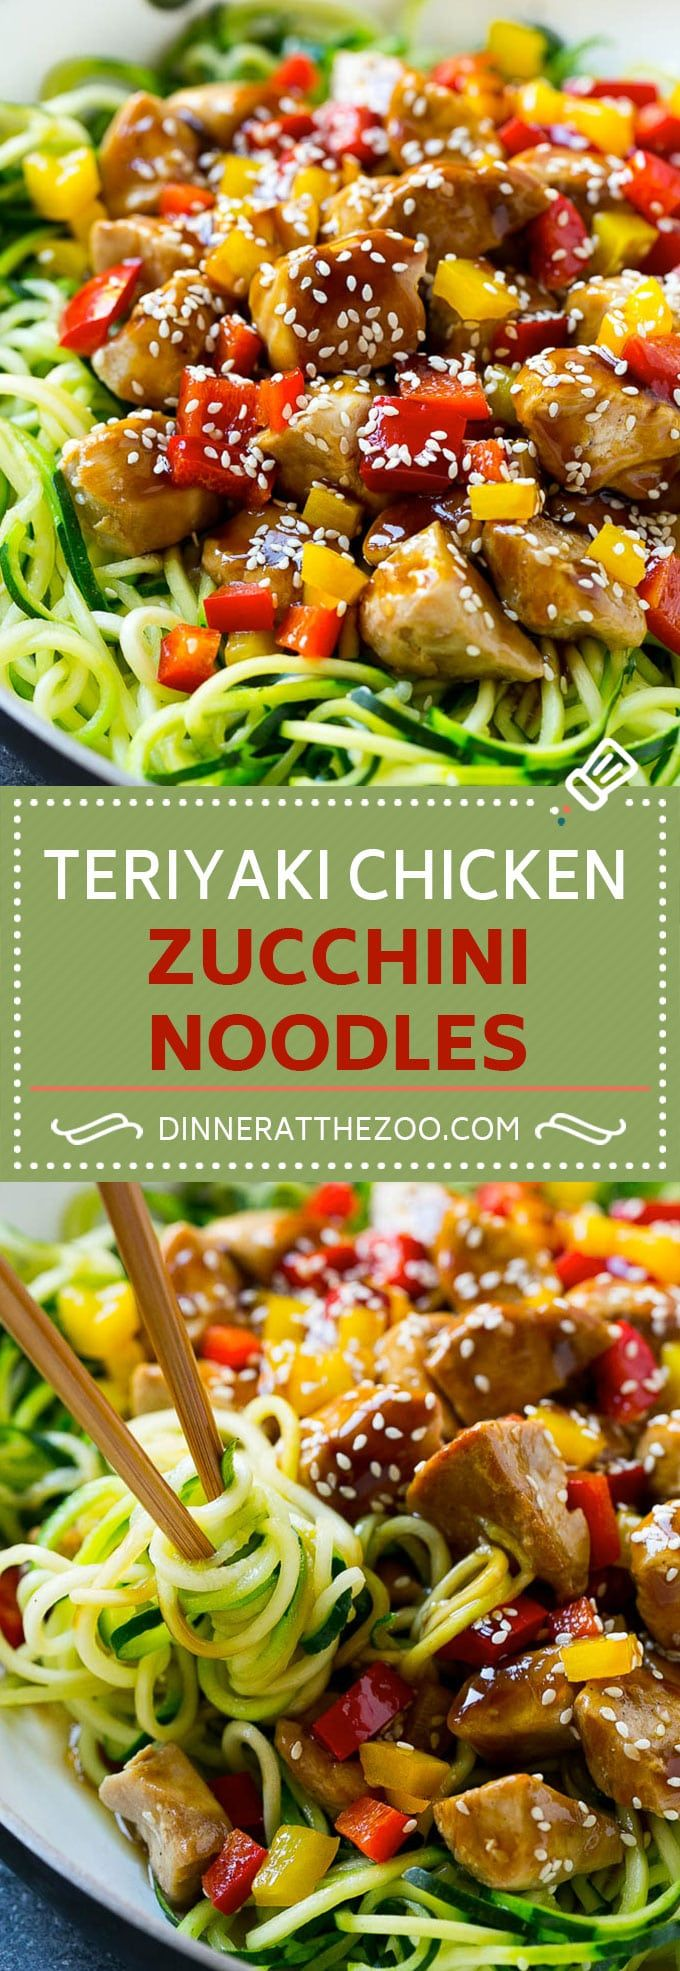 Best 25 food groups ideas on pinterest food groups for kids teriyaki chicken zucchini noodles zoodle recipe teriyaki chicken forumfinder Choice Image